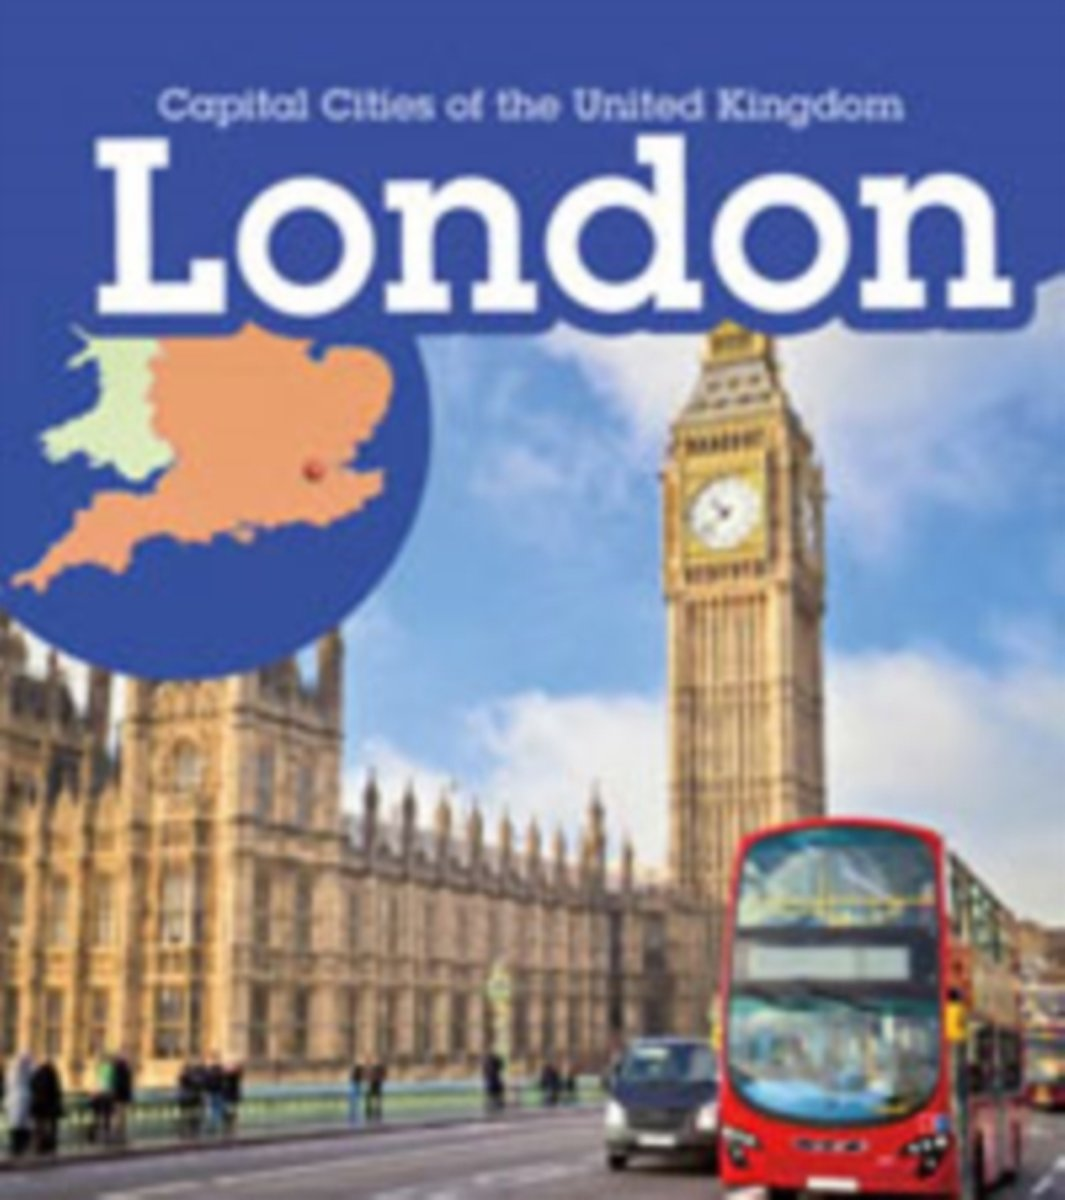 Capital Cities of the United Kingdom Pack A of 4